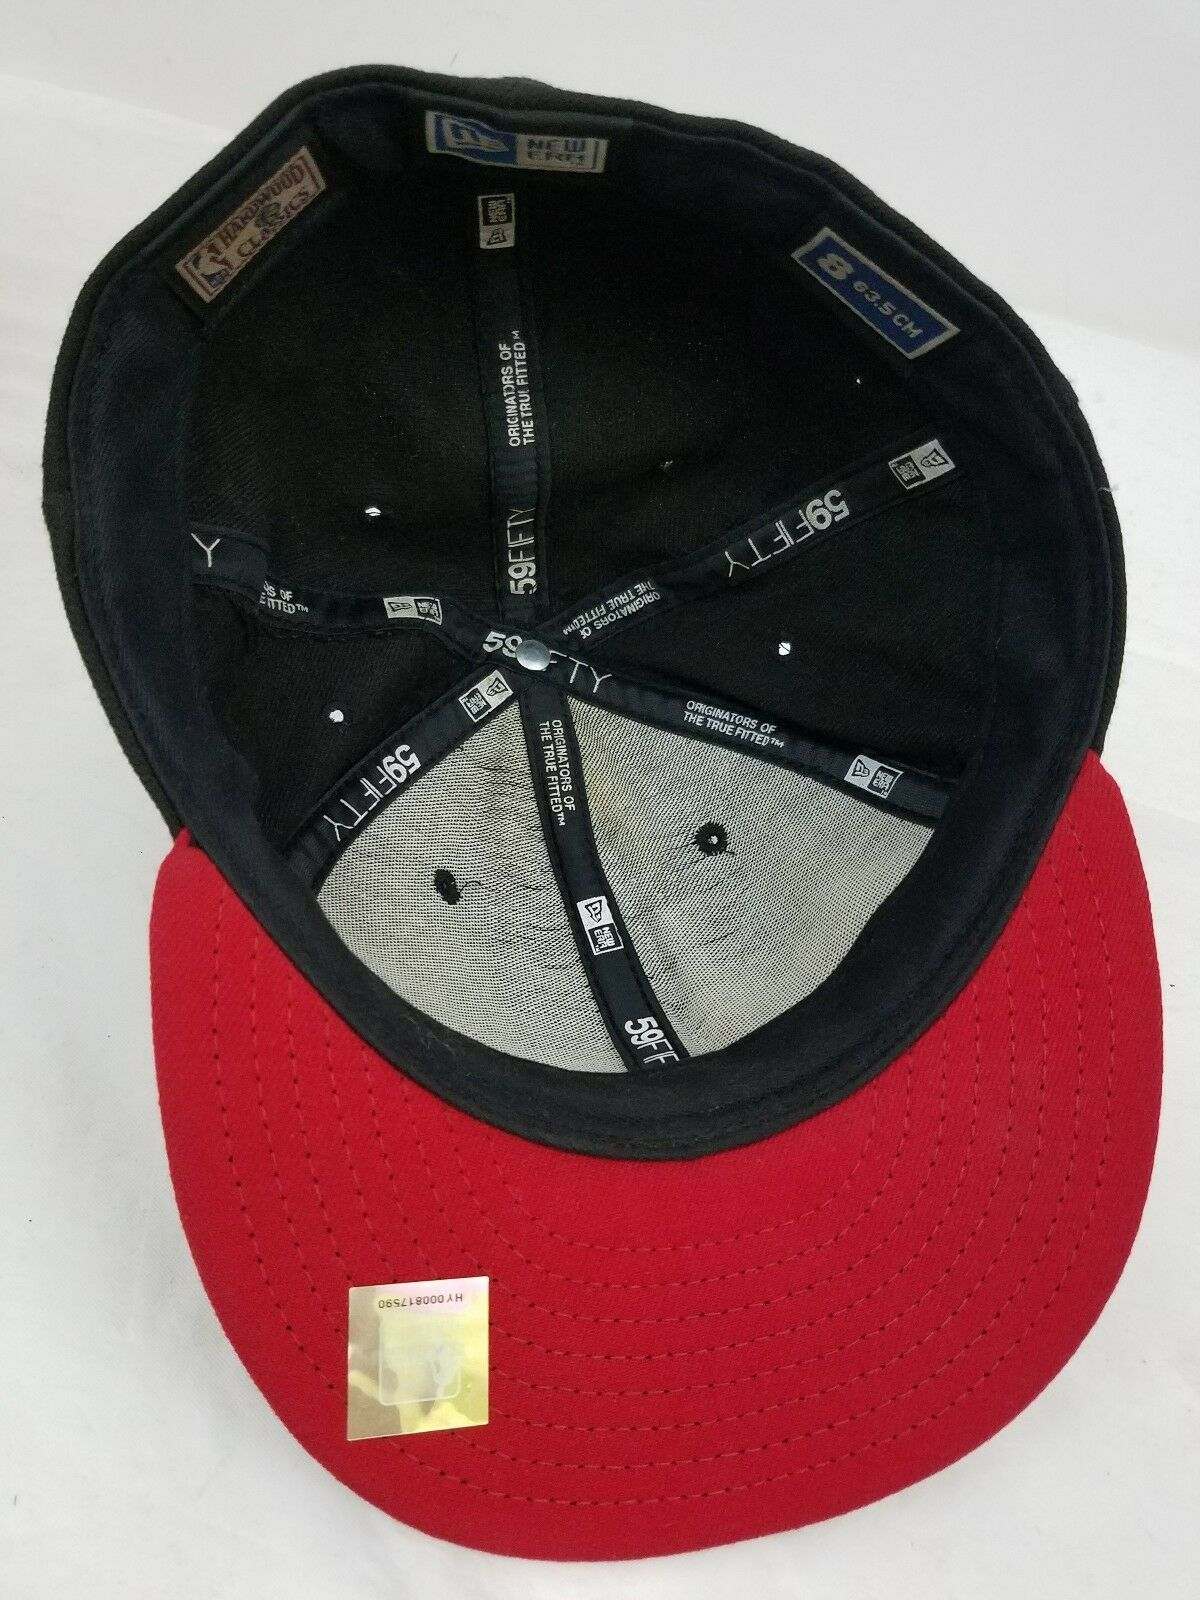 Chicago Bulls Skyline Embroidered New Era Fifty Nine 50 Hat Sz 8 Flat Cap